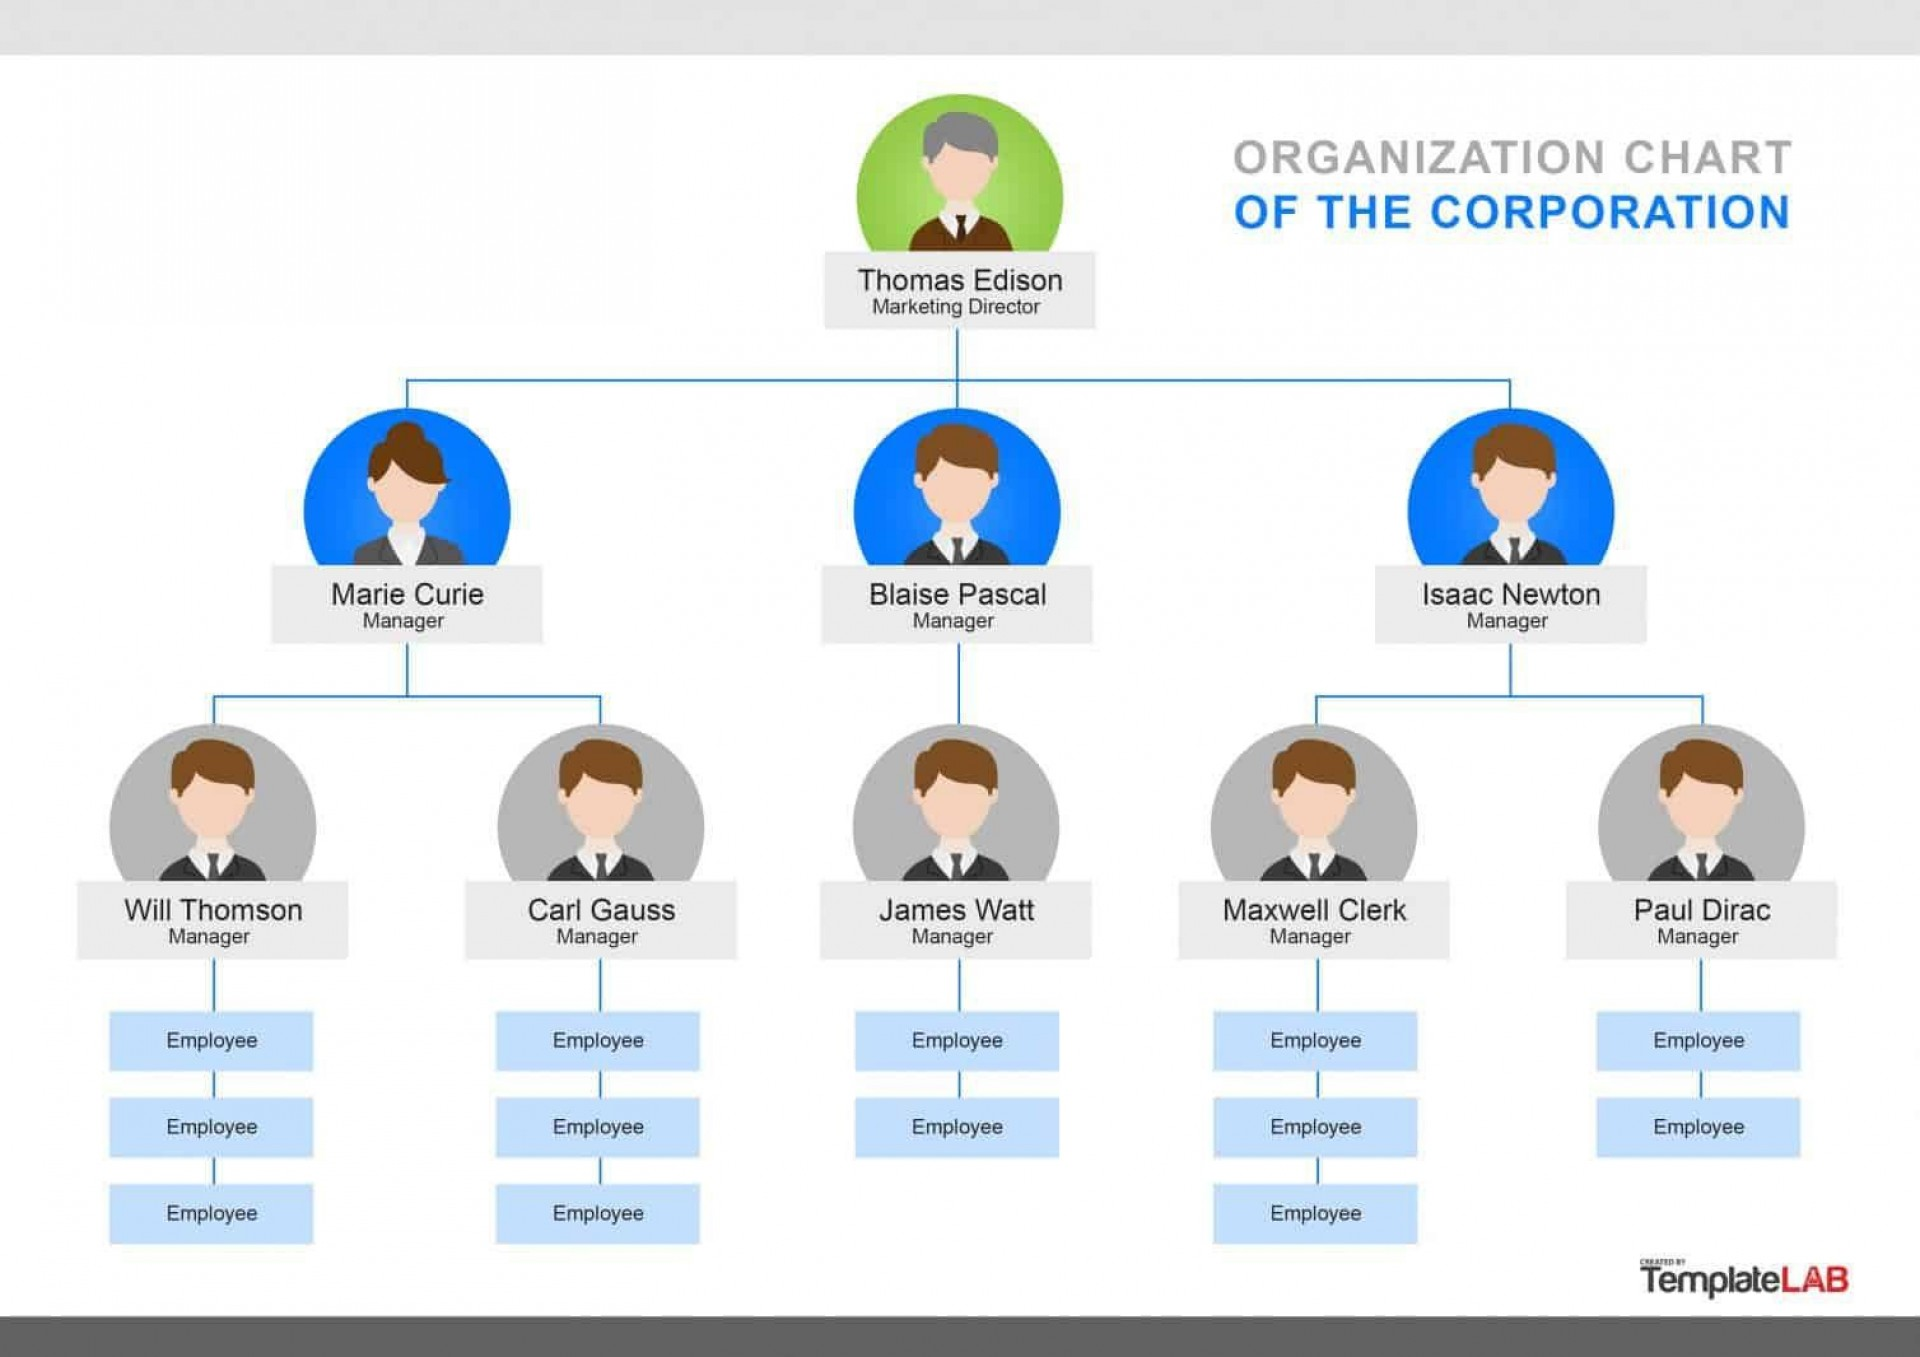 000 Singular Organizational Chart Template Word Concept  2010 2007 Free Download1920